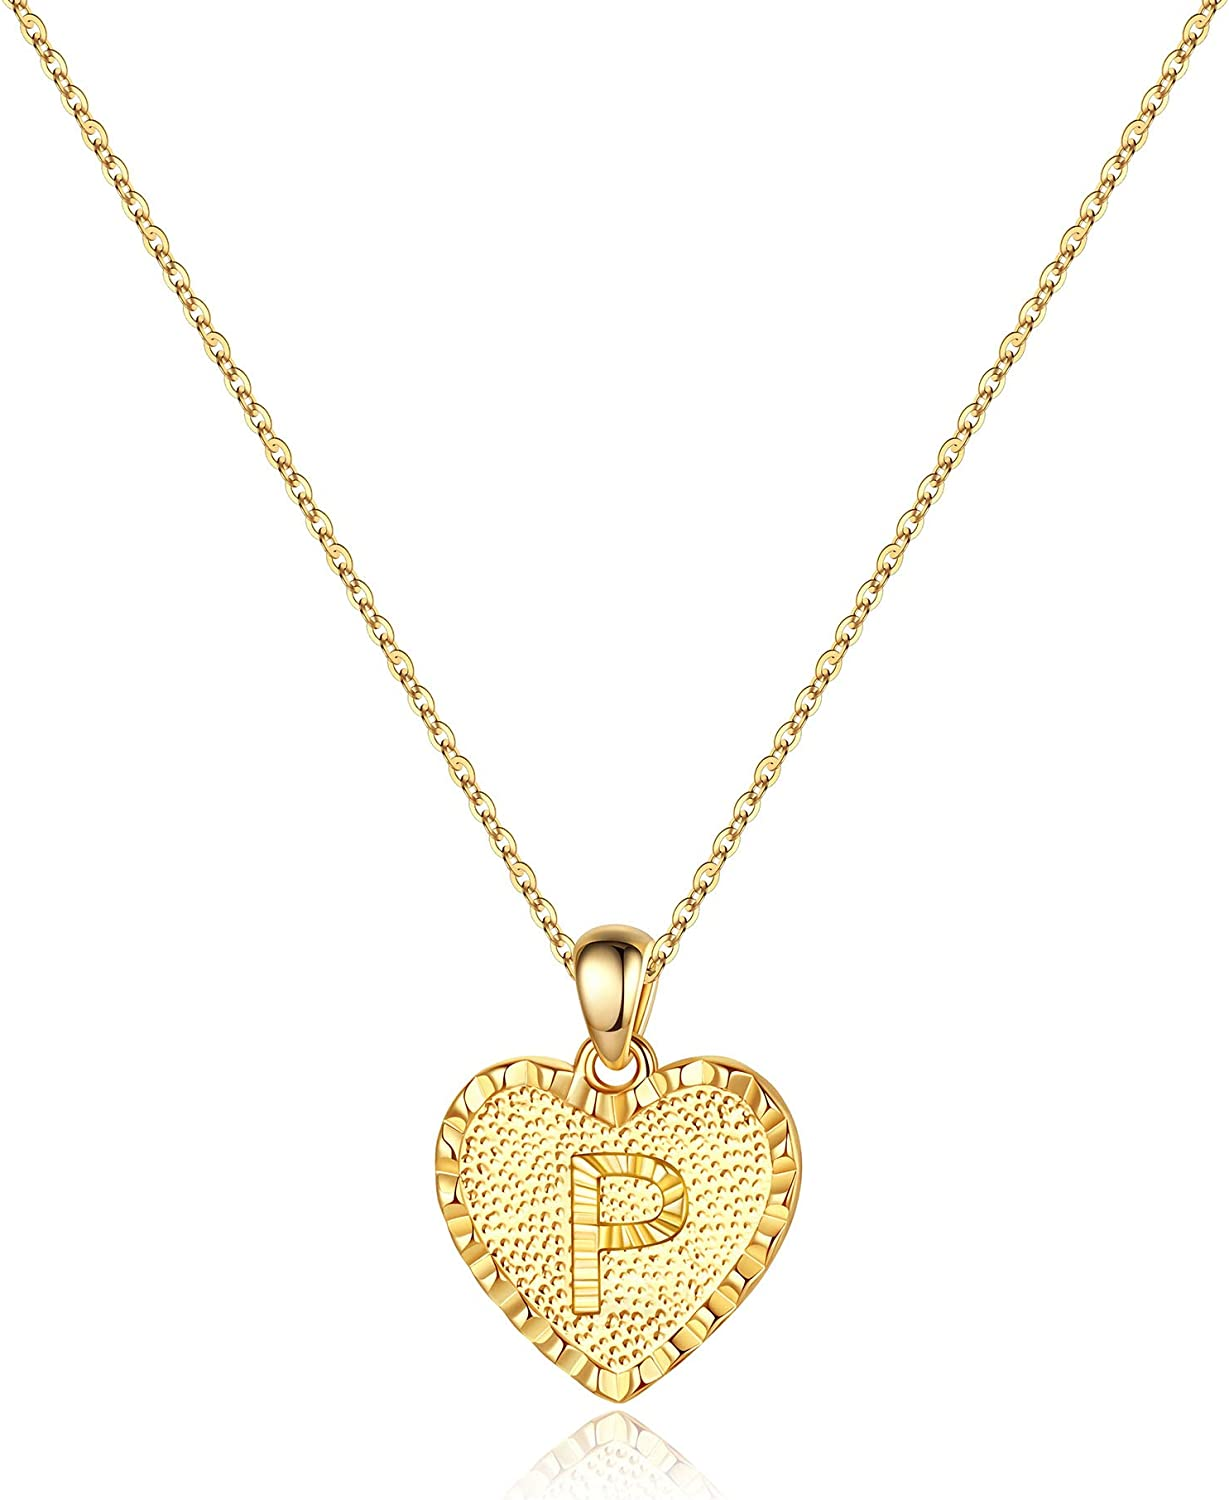 14K Gold Filled Dainty Heart Pendant Initial Letter Necklaces Handmade Engraved Alphabet Monogram Necklaces Jewelry Gift Idea for Women Teen Girls IEFSHINY Heart Initial Necklace for Women